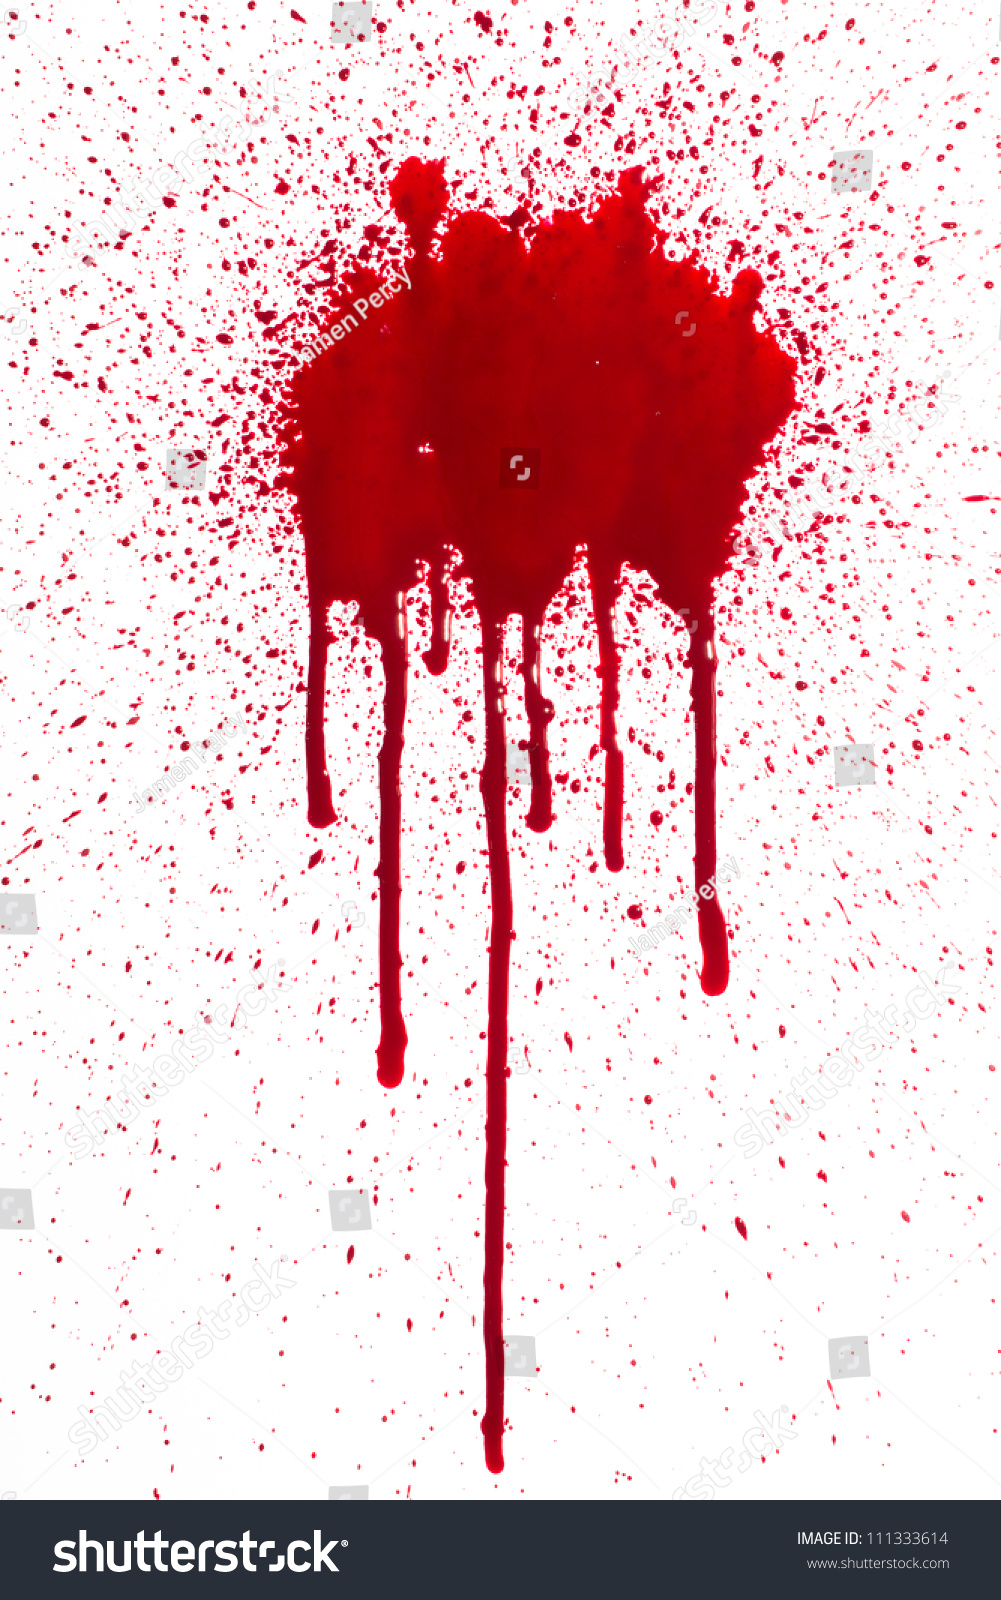 blood drip stock photo 111333614 shutterstock